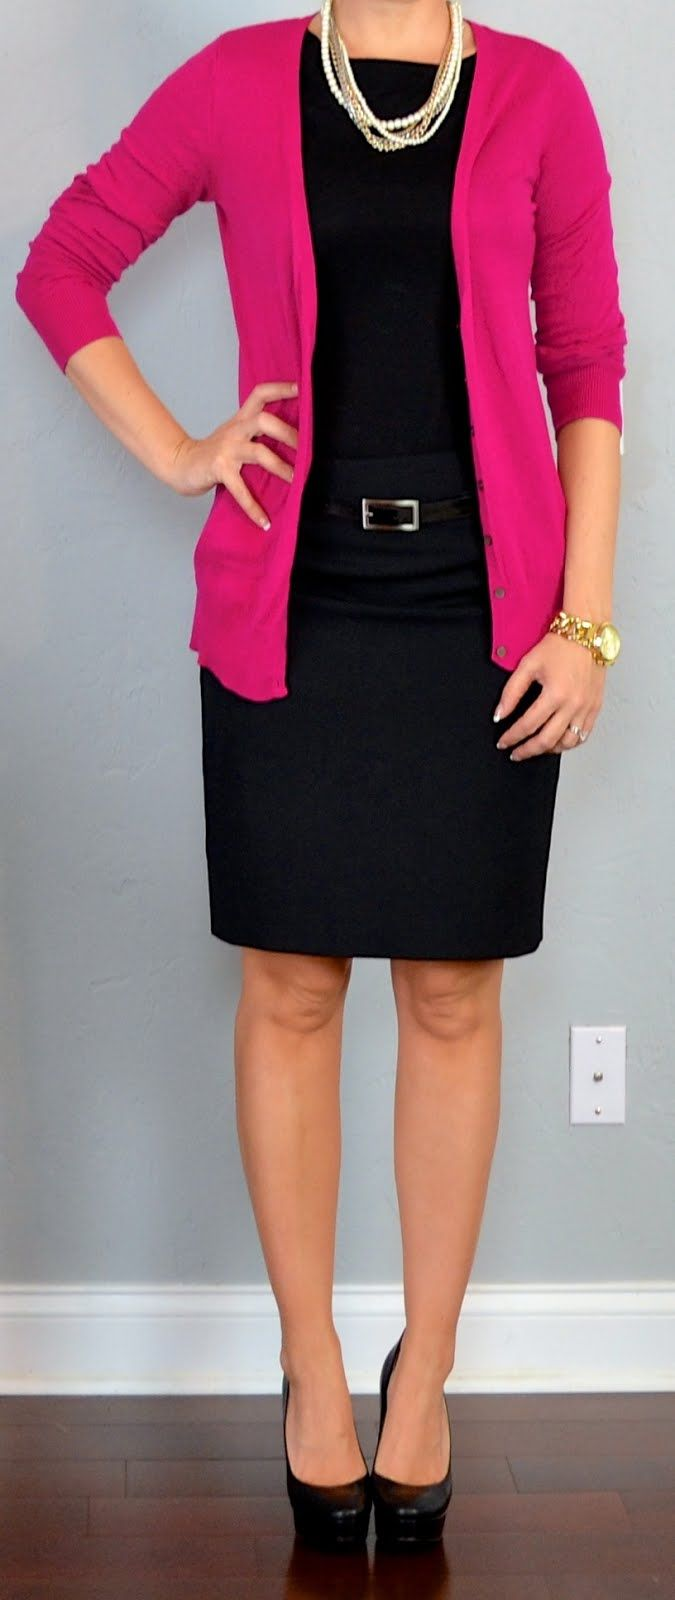 outfit posts: pink cardigan, black blouse, black pencil skirt | Outfit Posts Dynamic